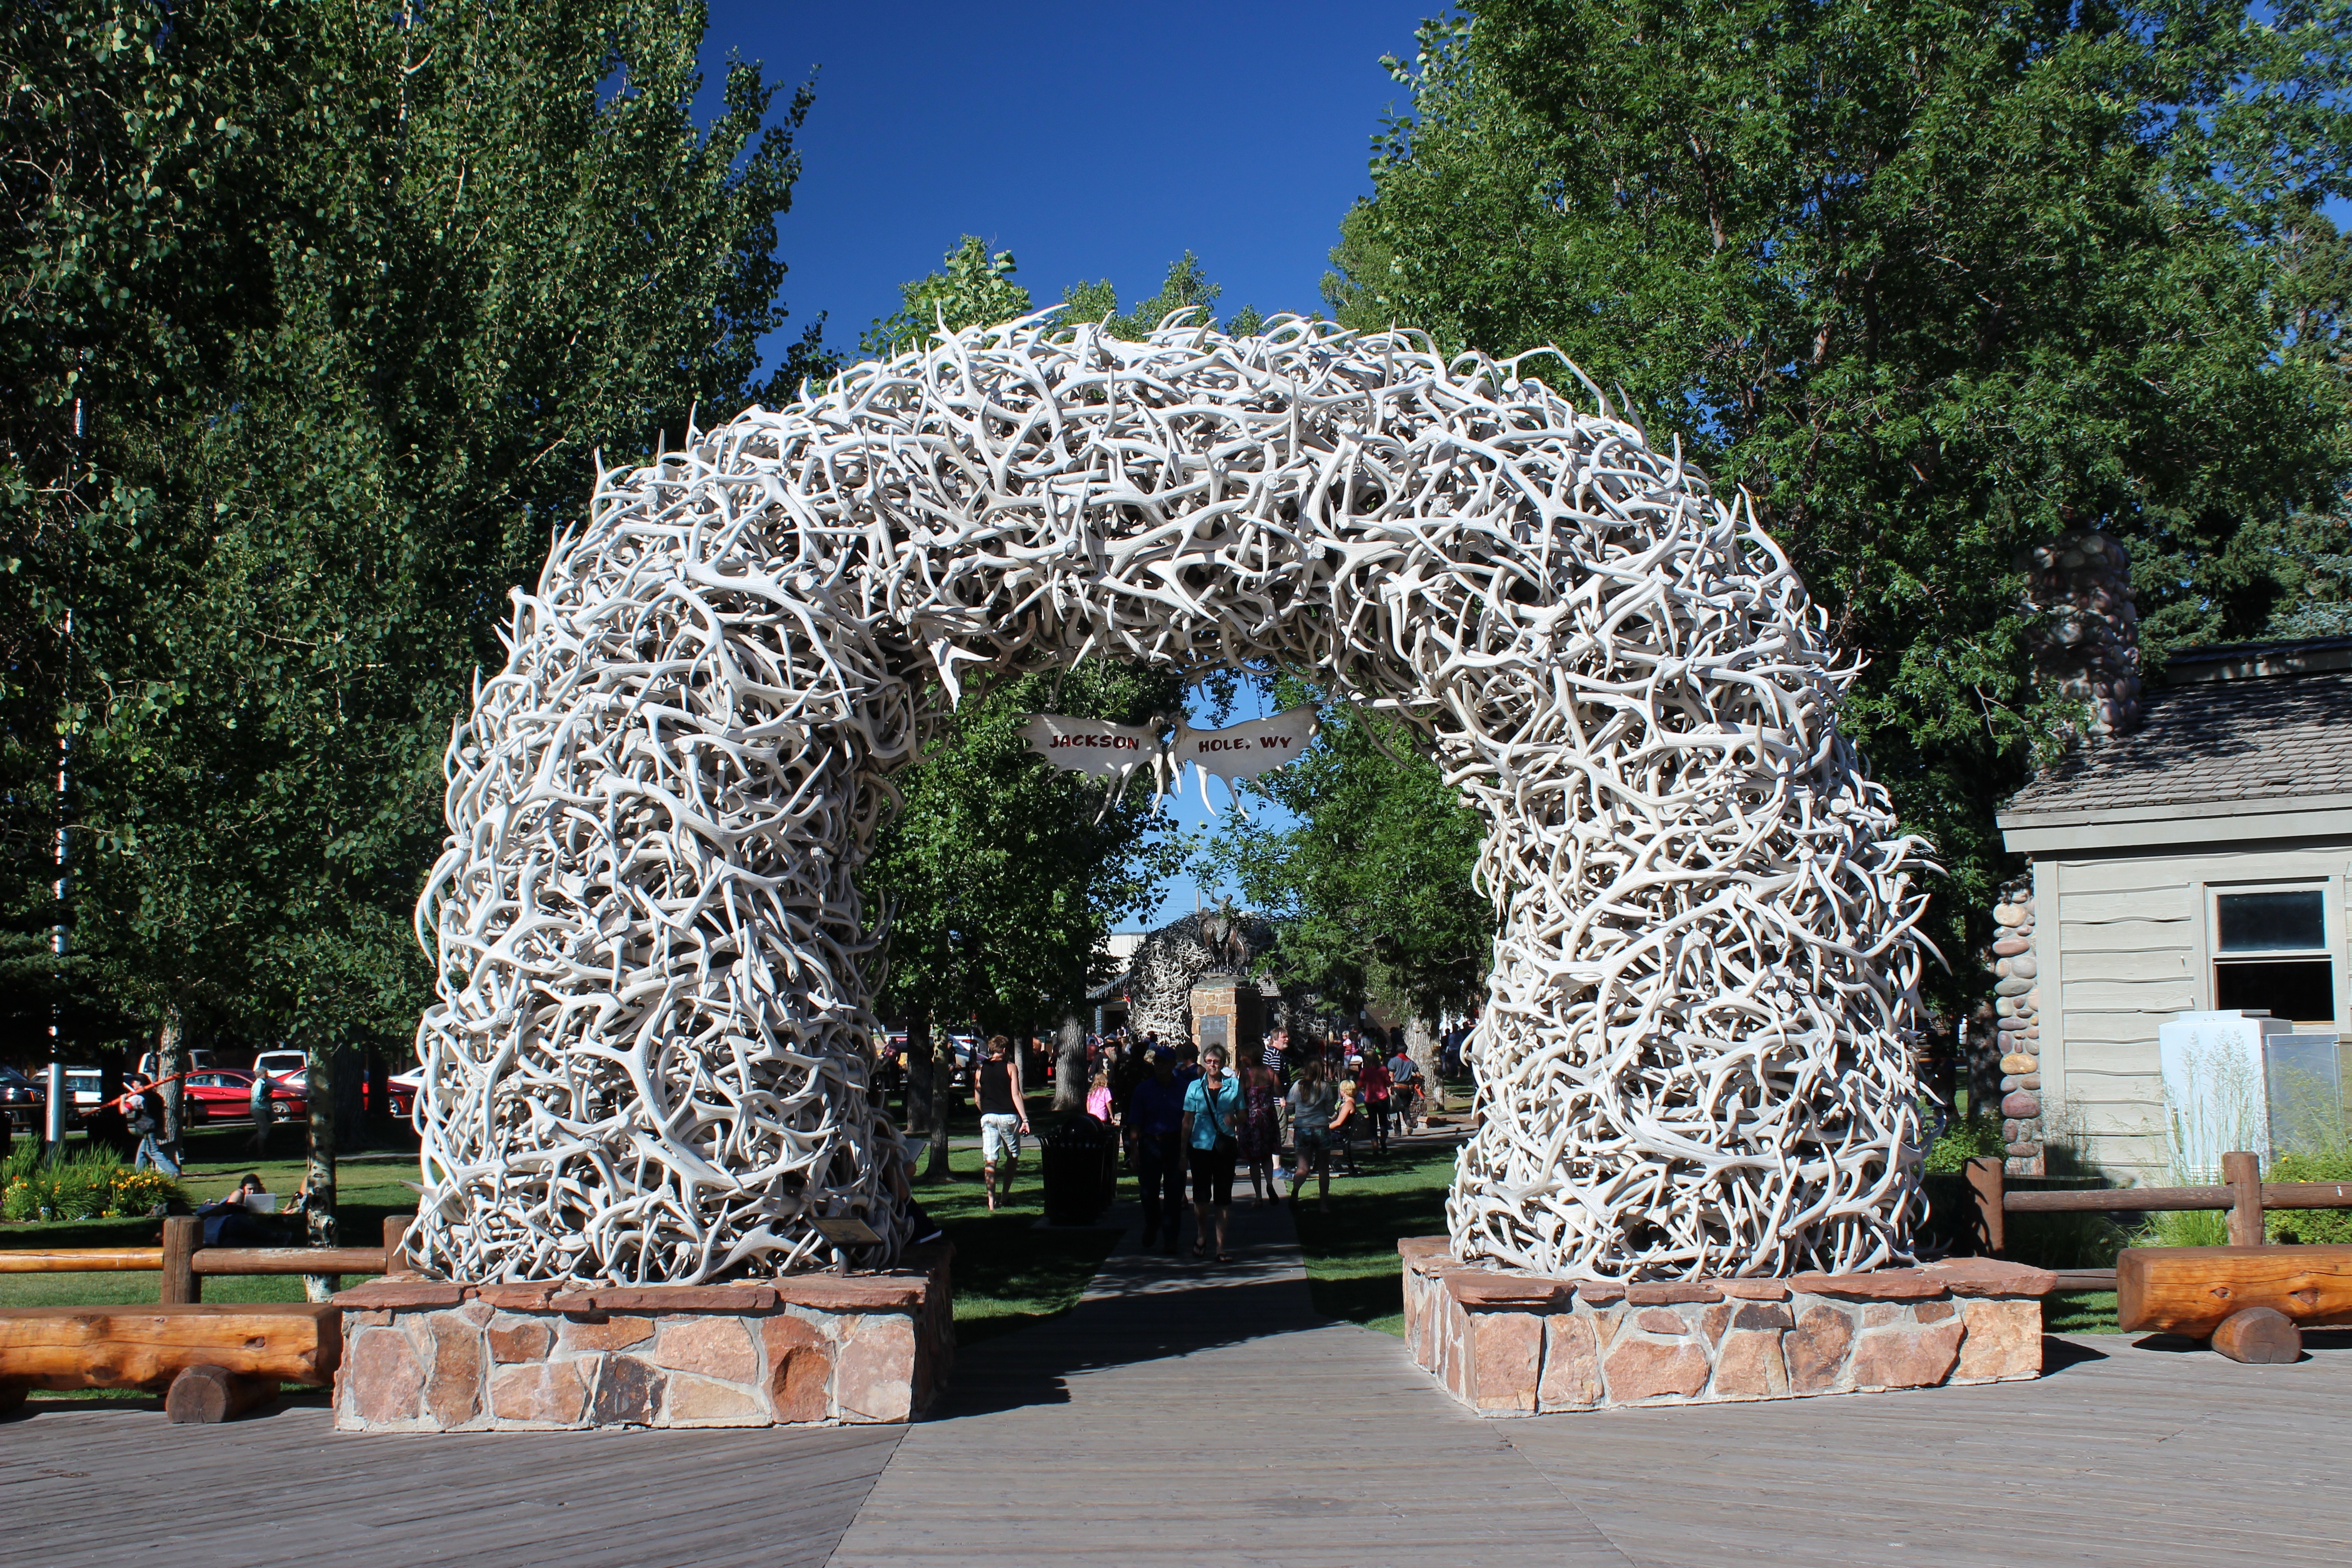 Top 10 things to do in jackson hole wy best of wyoming for Things to do in jackson hole wy